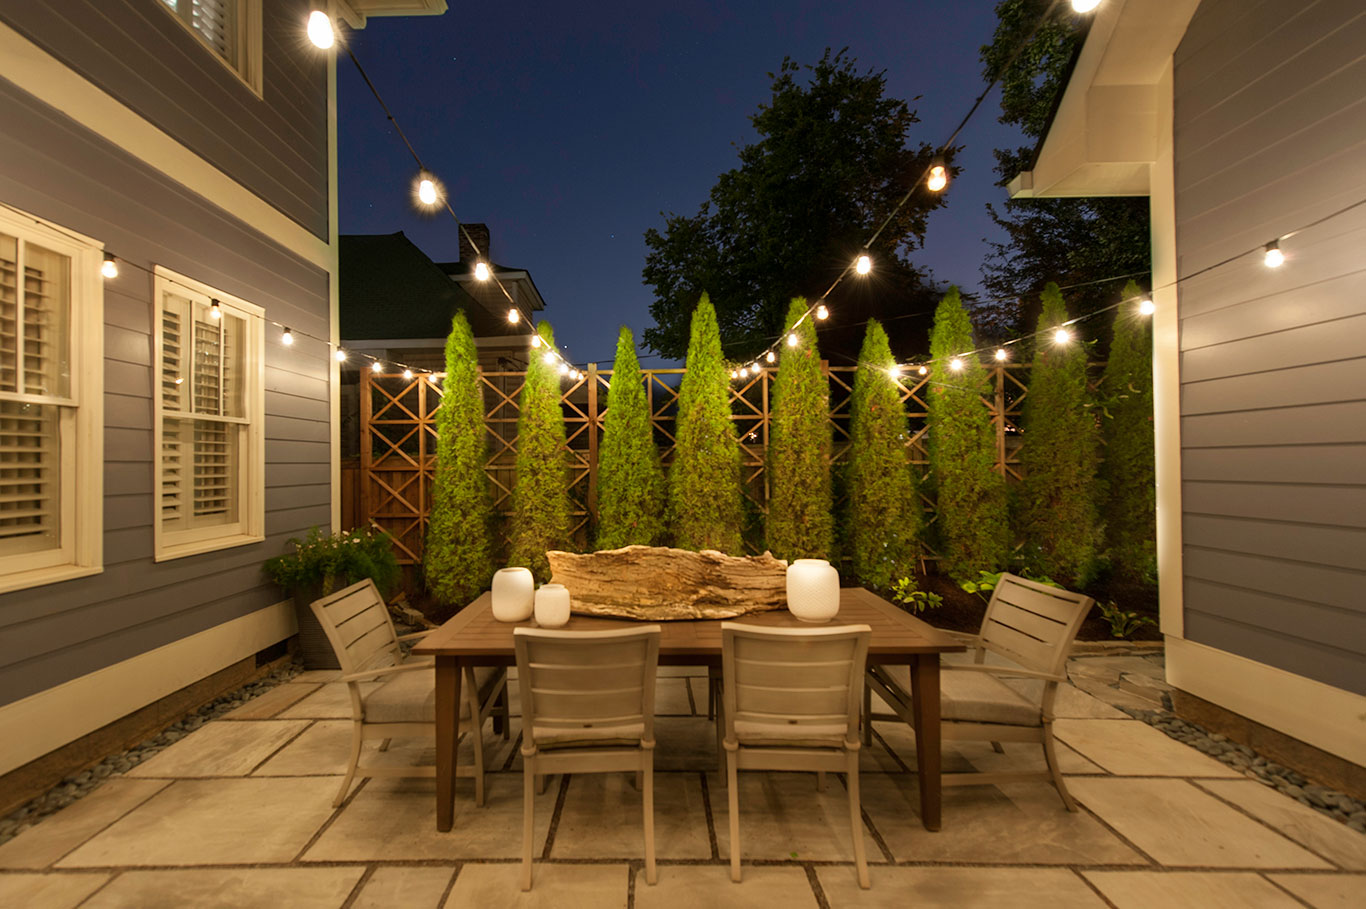 outdoor lighting services light up nashville - Perspectives Deco